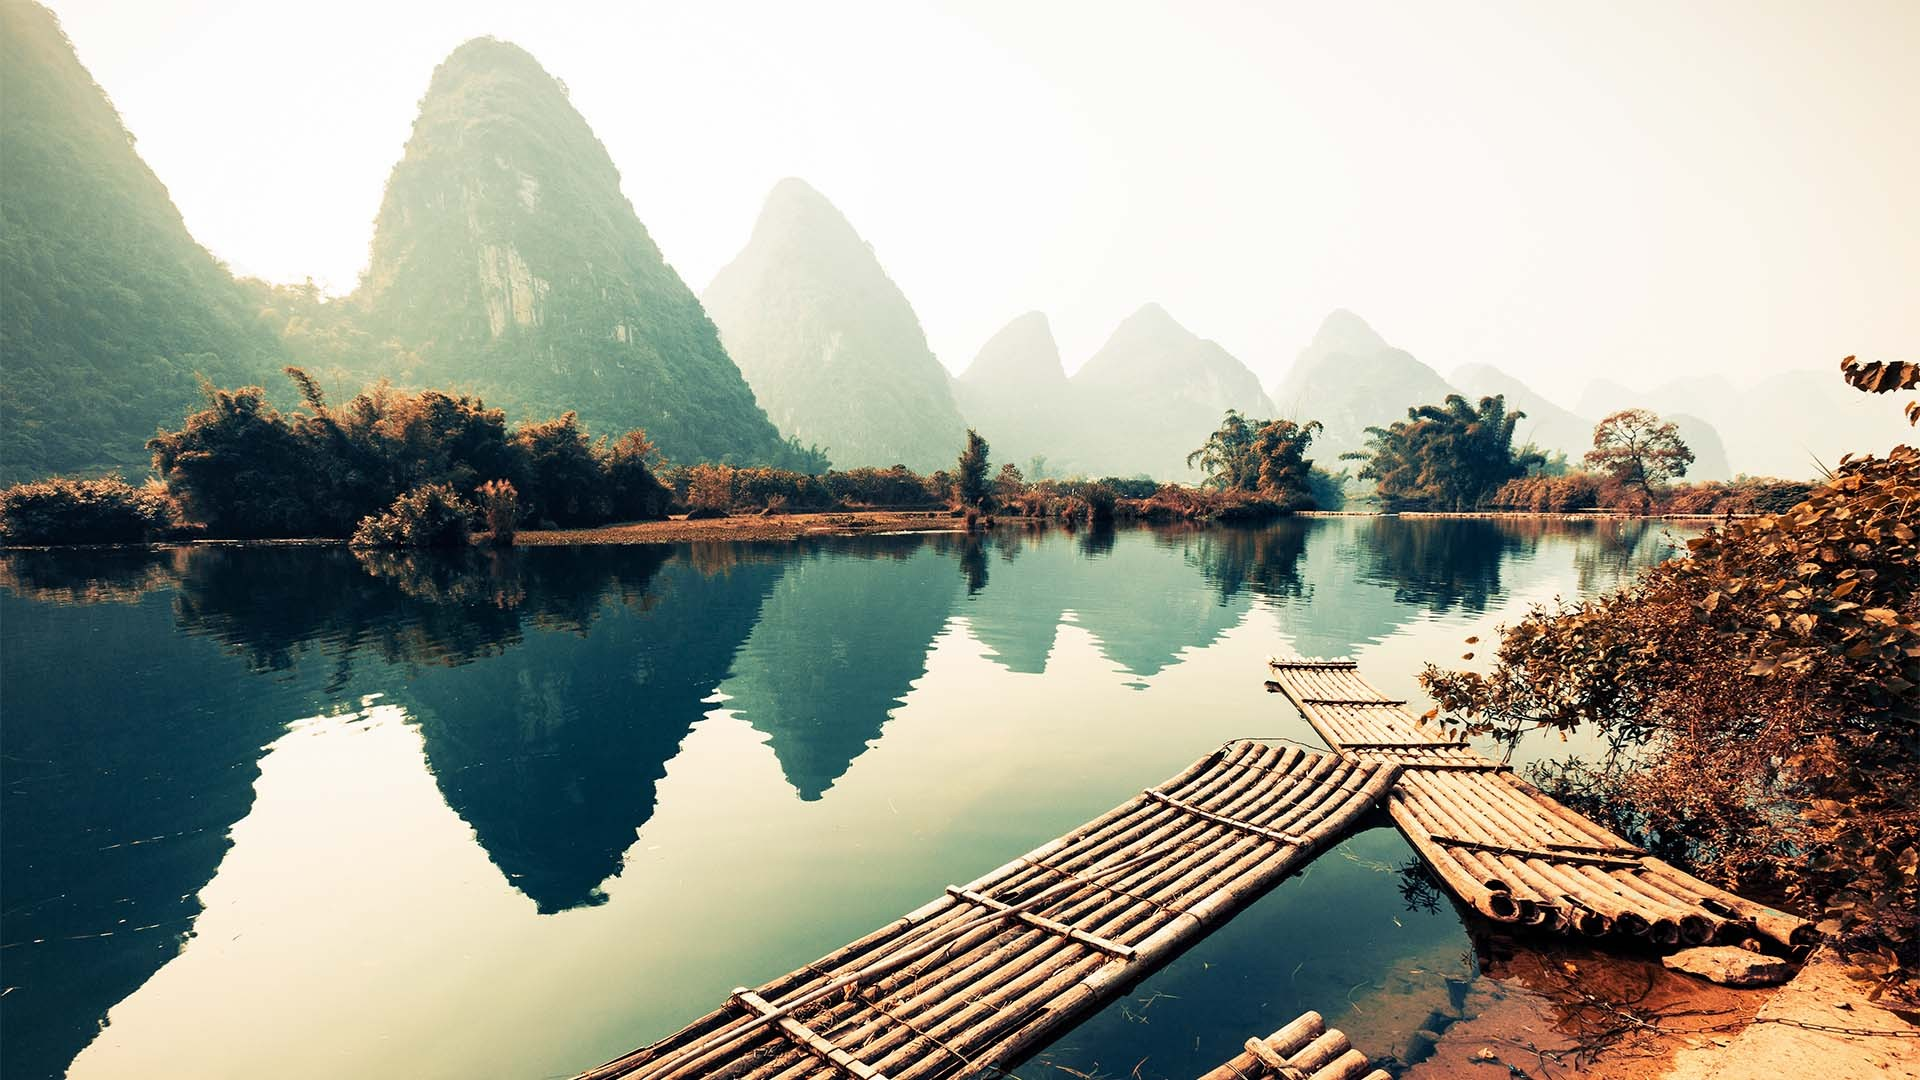 Karst bamboo boat on a river, Yangshuo